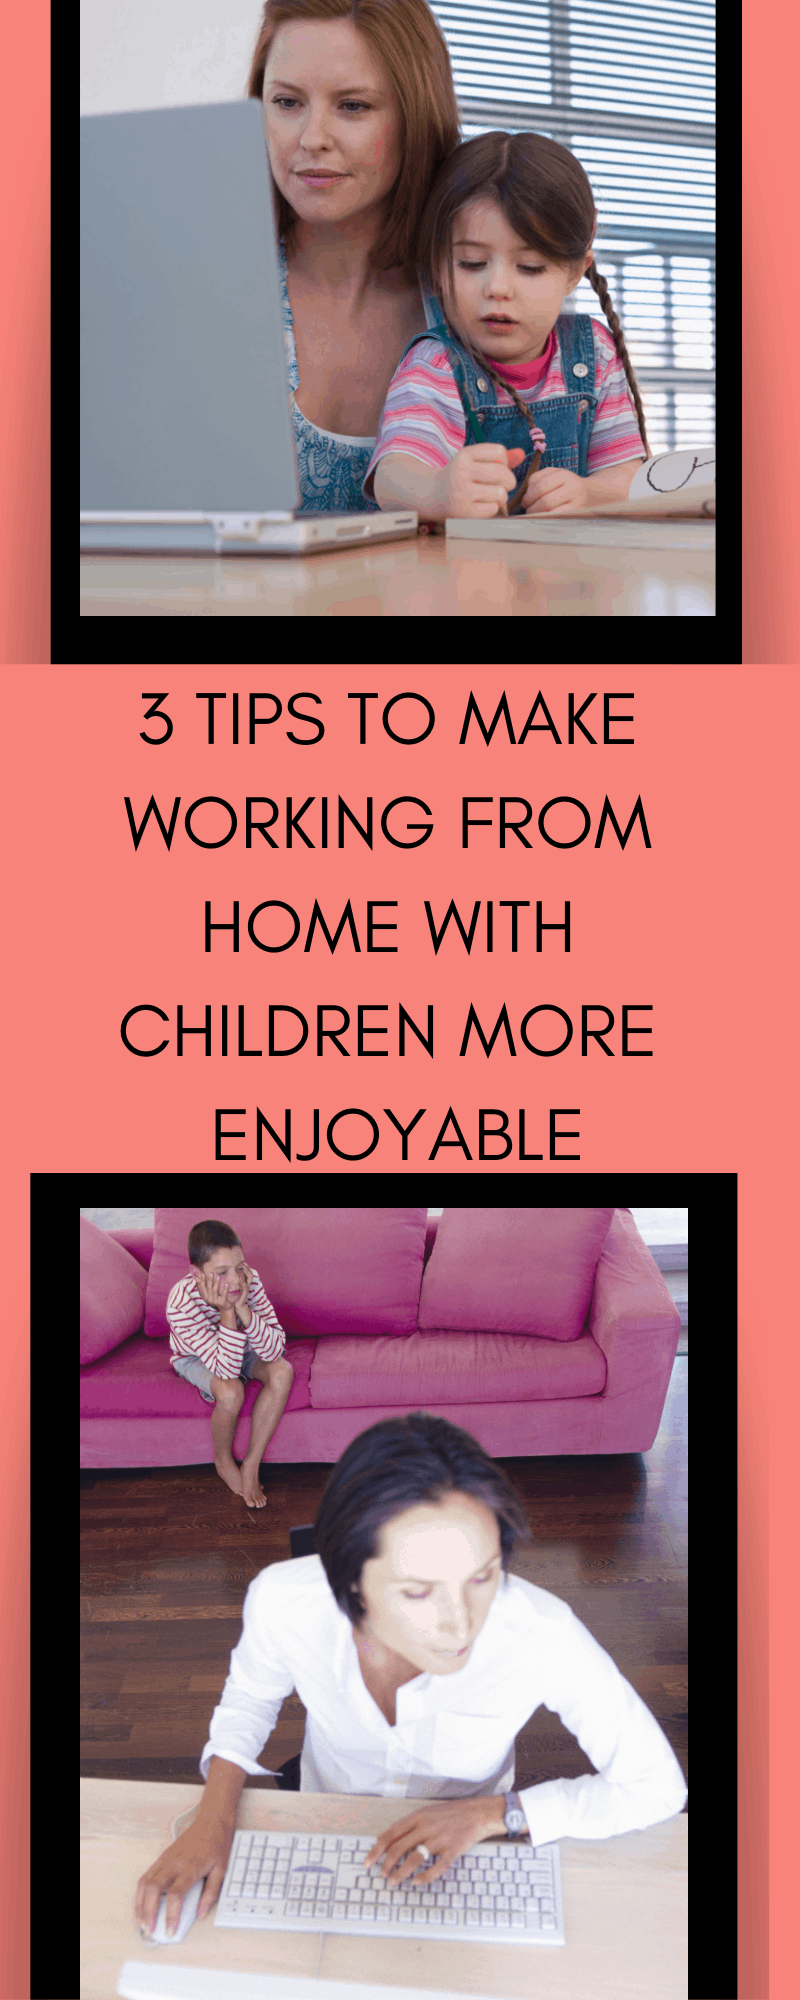 3 Tips to Make Working from Home with Children More Enjoyable #sahm #wahm #workfromhome #smallbusiness #momownedbiz